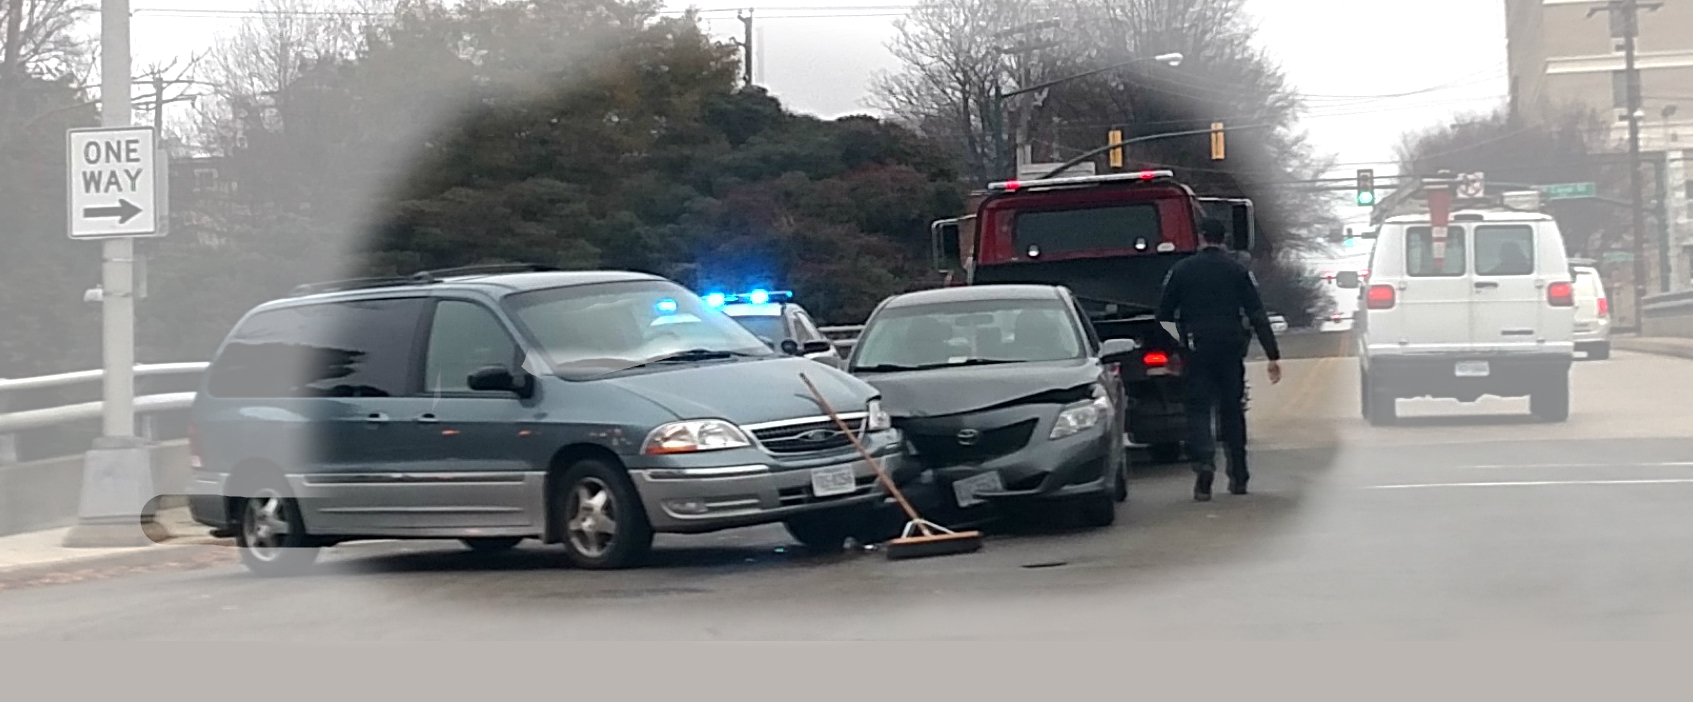 auto-accident-richmond